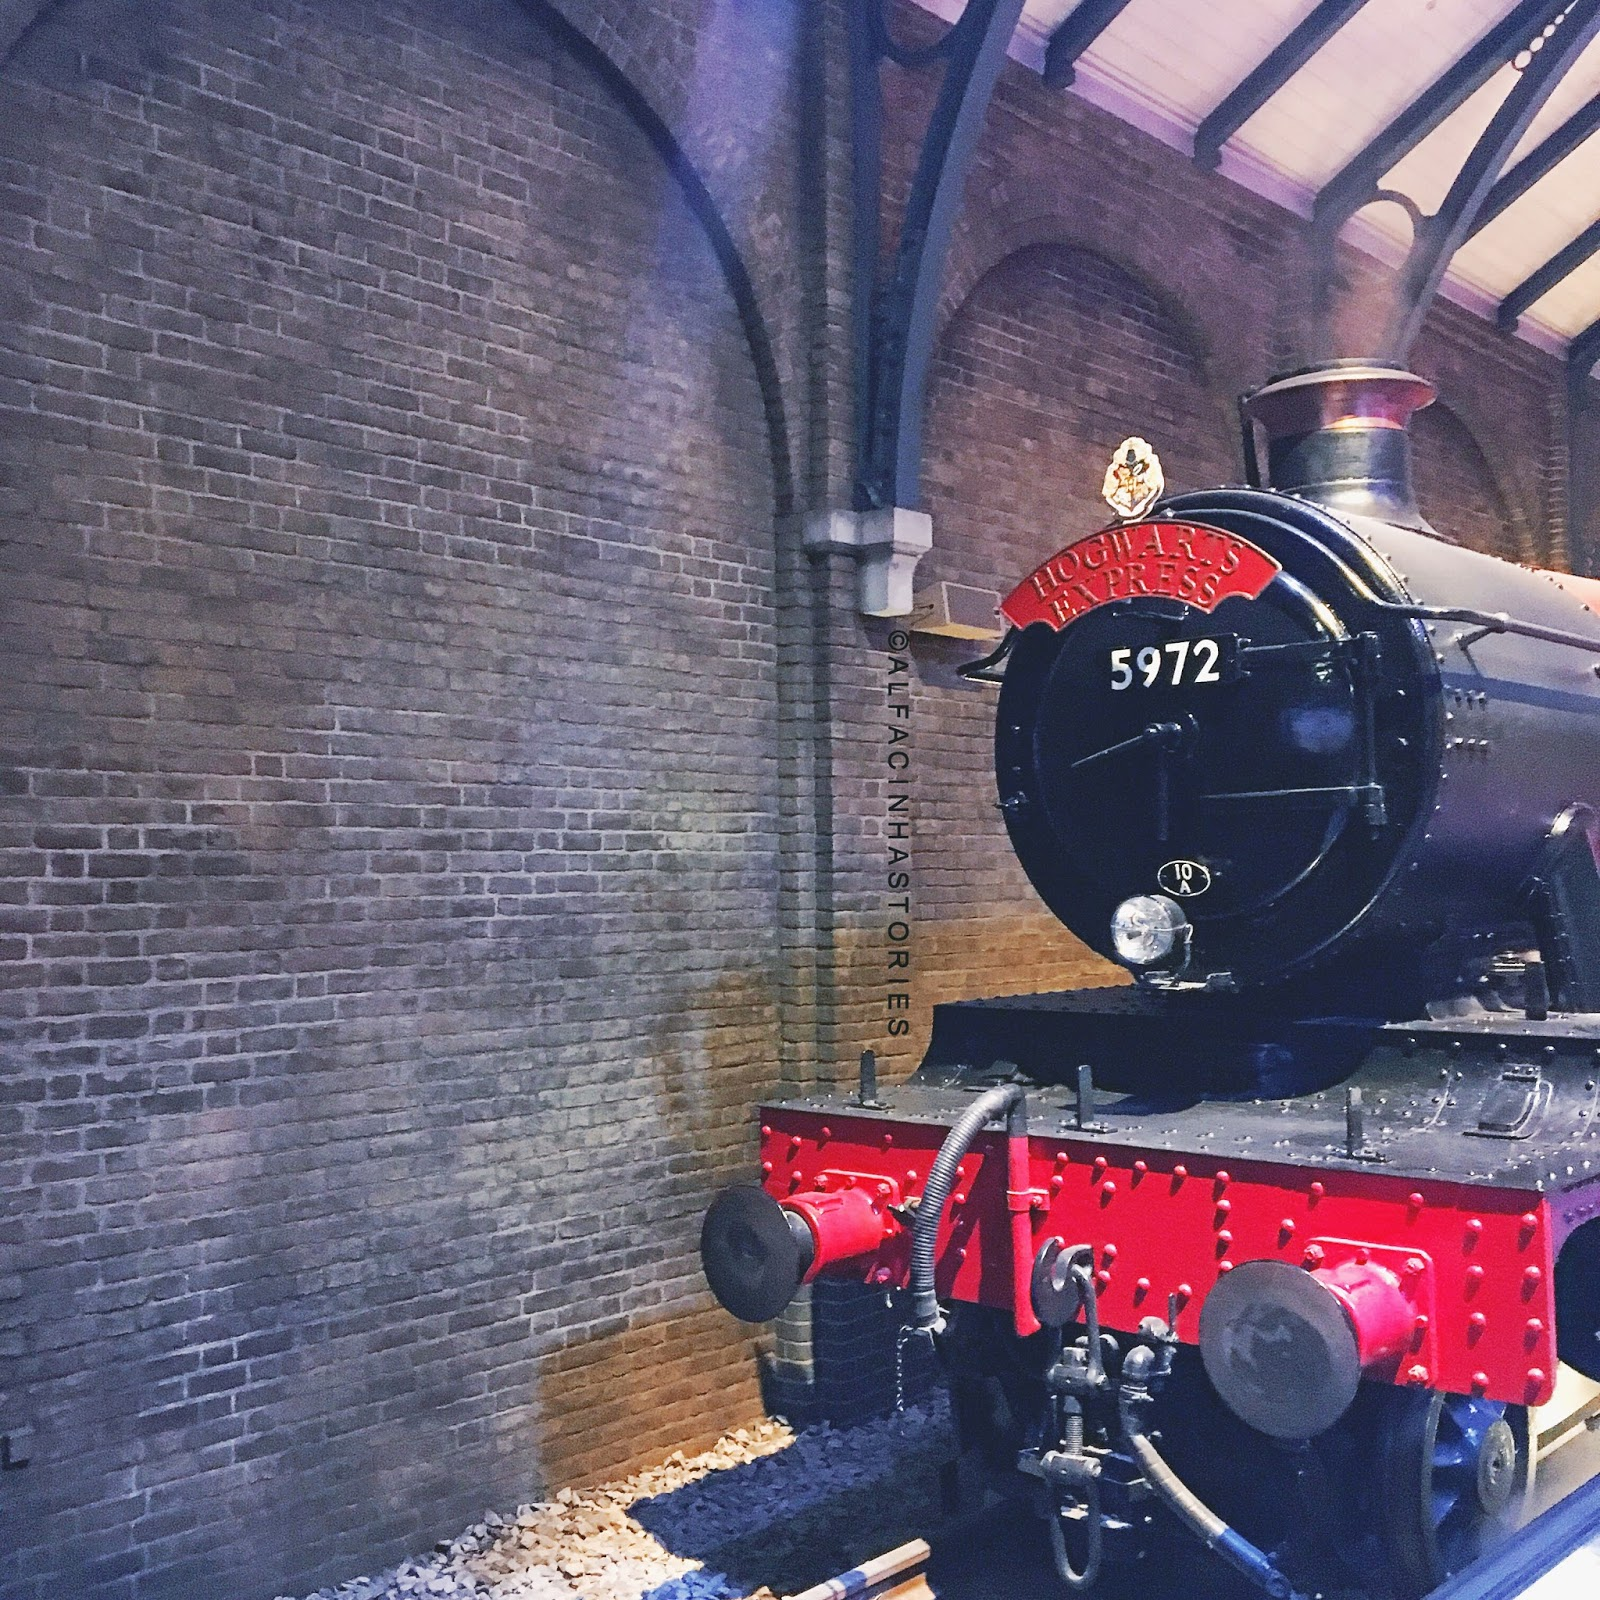 Harry Potter studio tour – The Hogwarts Express